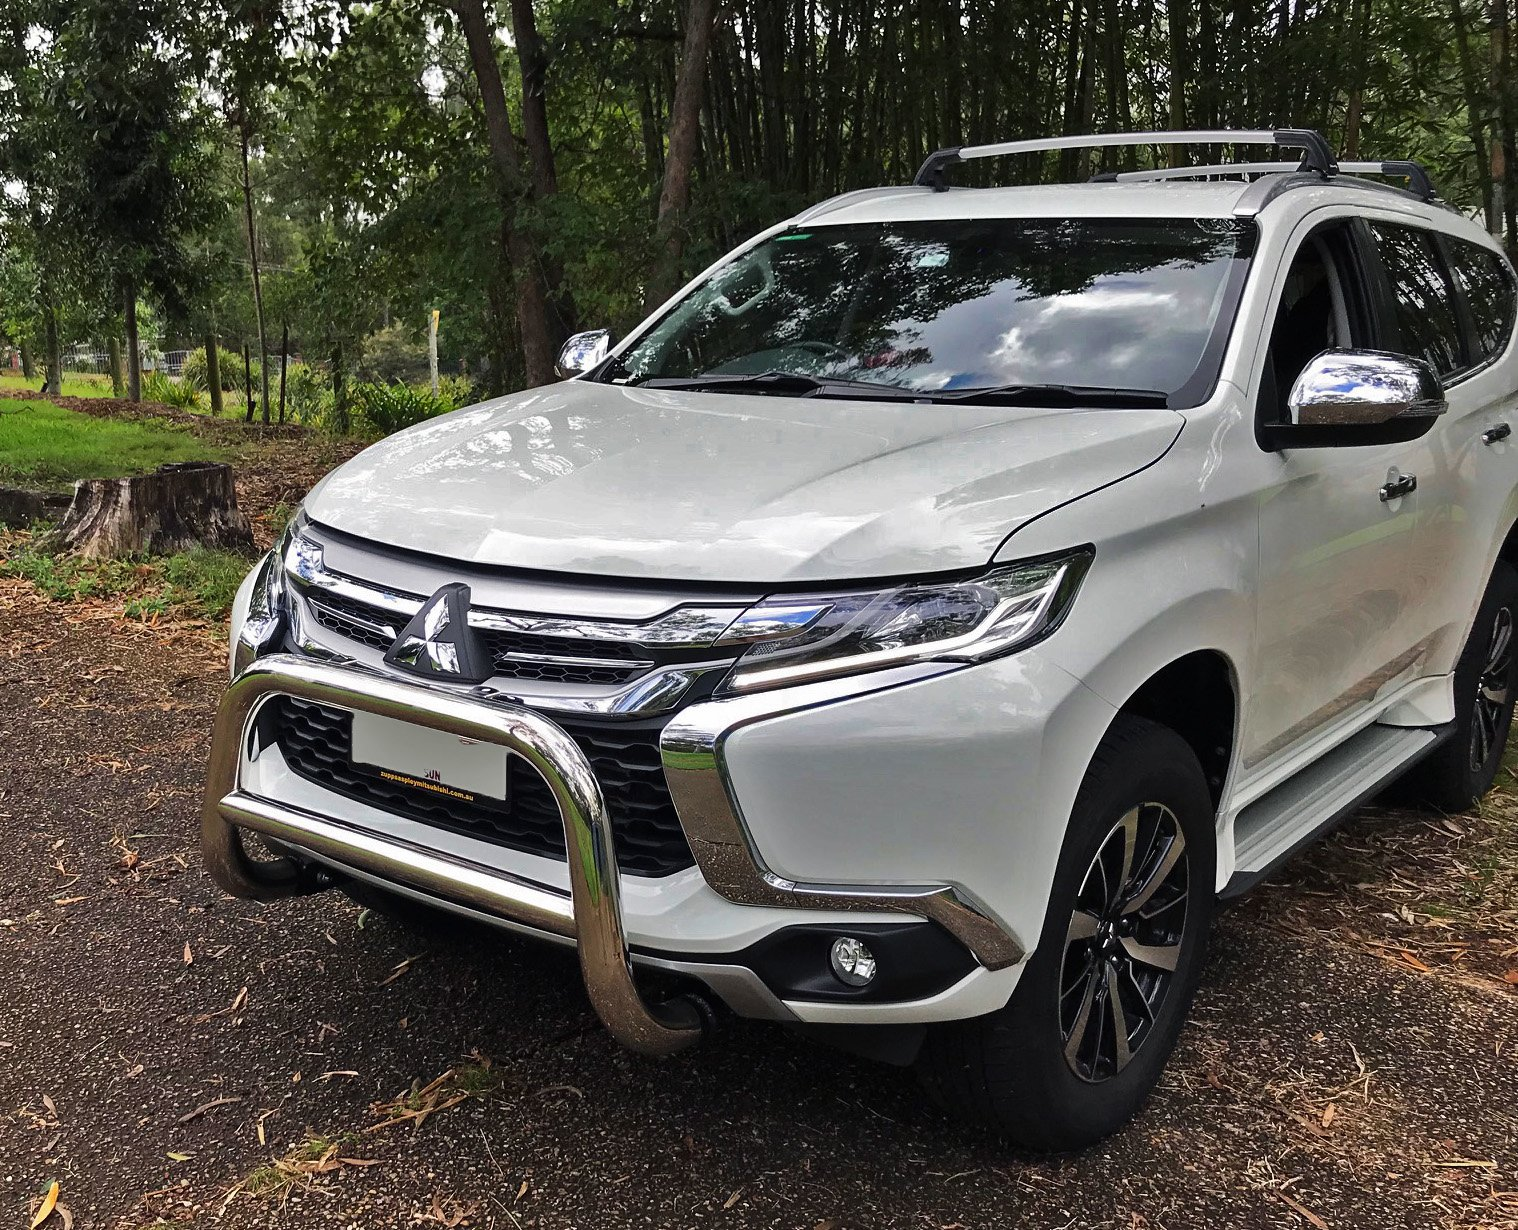 2015-2020 Mitsubishi Pajero SPORT Stainless Steel Nudge Bar Australian Designed with Heavier Wall Construction Equipe Automotive 44